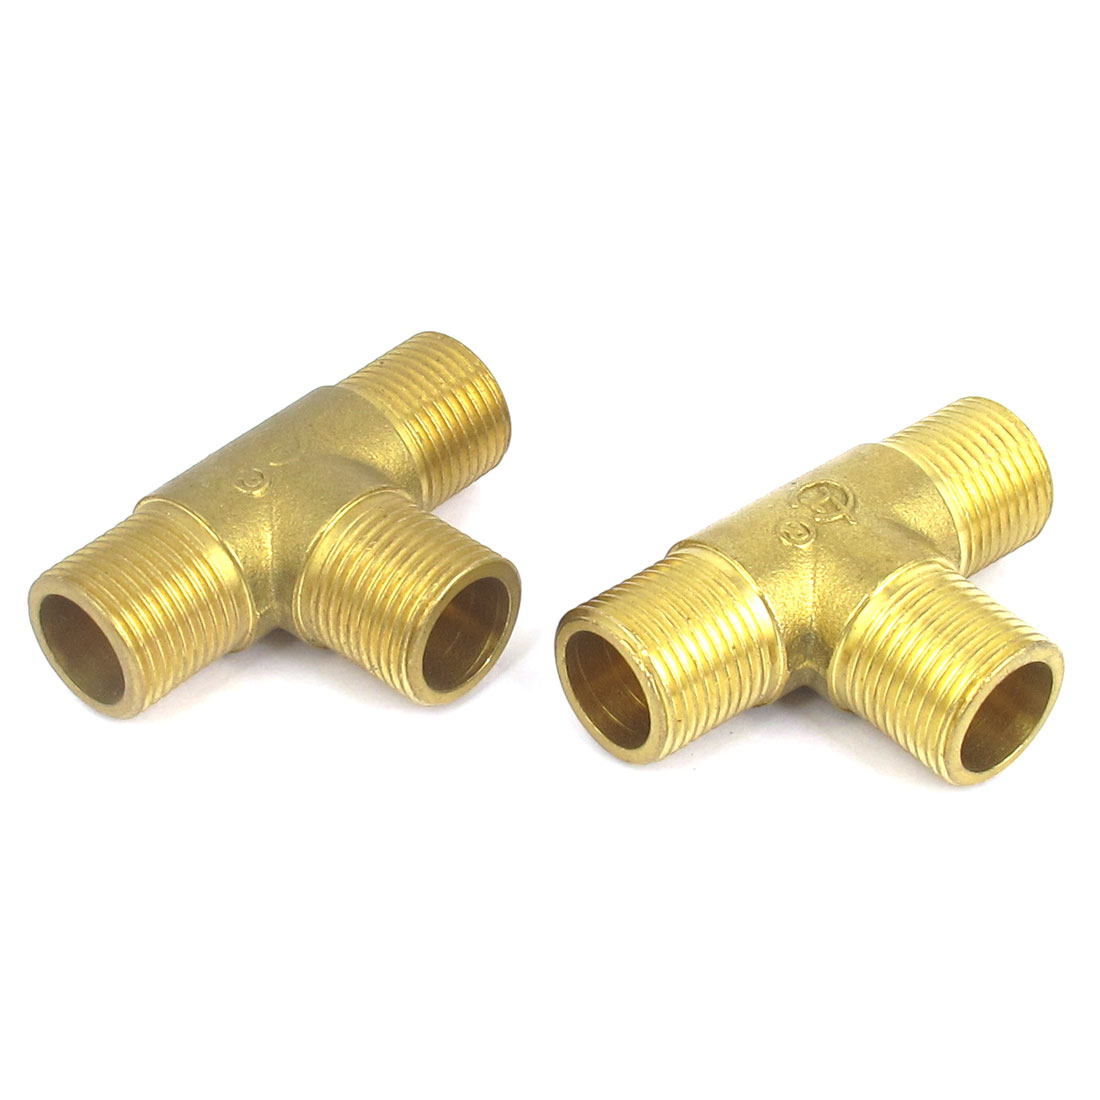 2 Pcs Brass 3/8BSP Thread Equal 3 Way T Shaped Tee Connectors Adapters